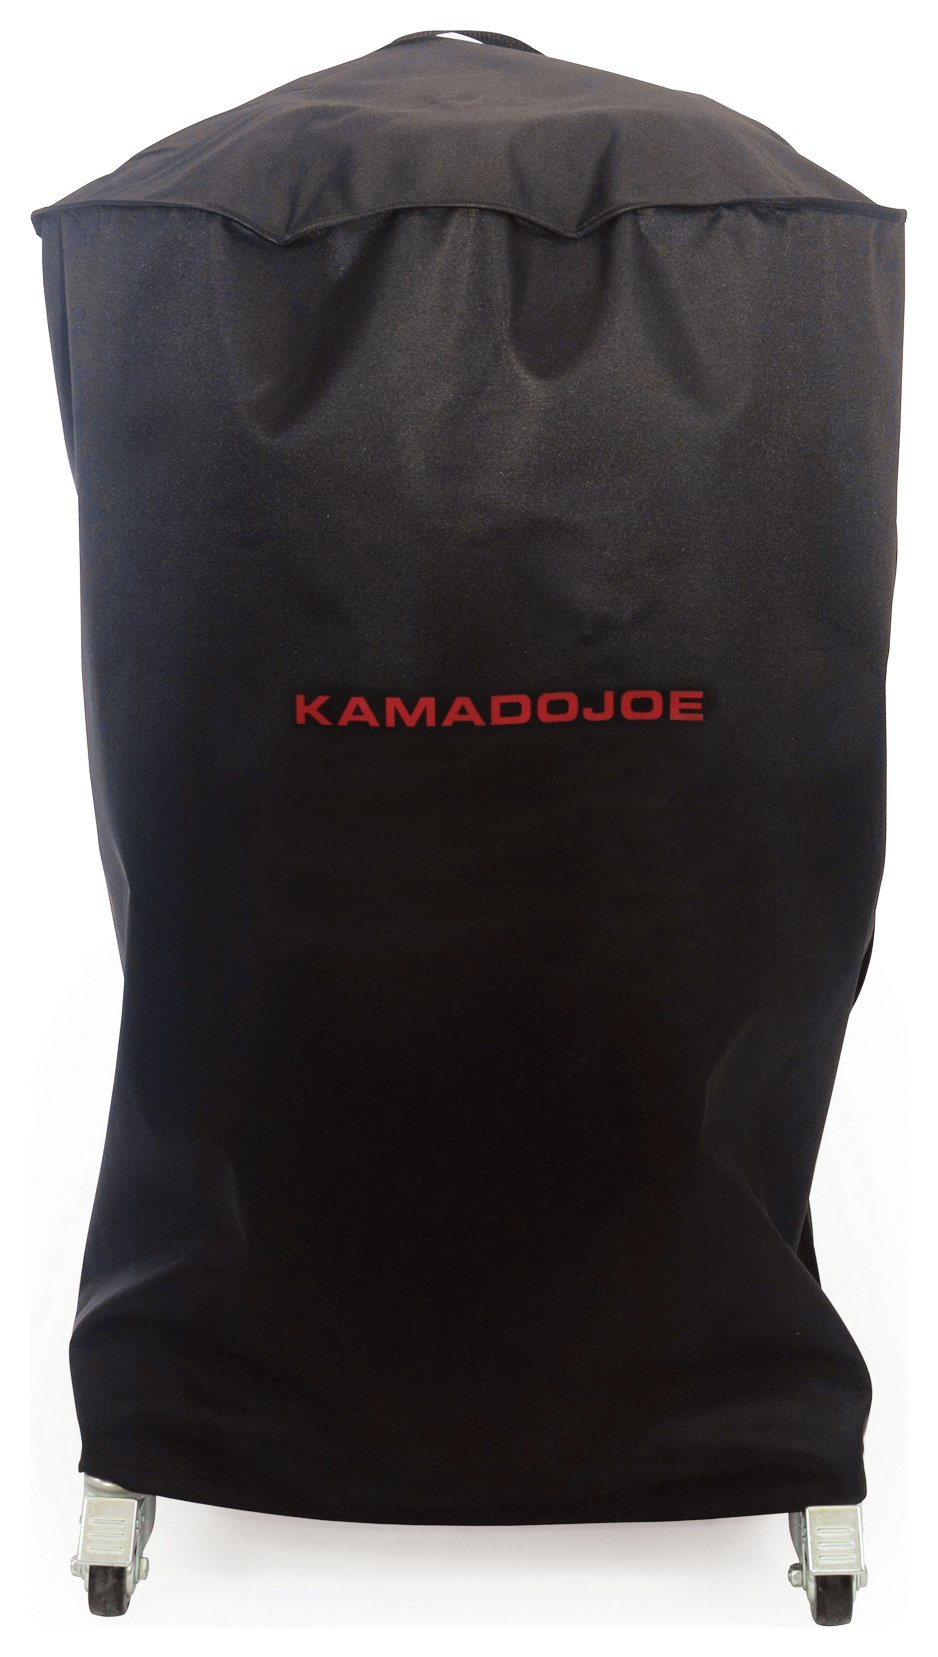 Image of Kamado Joe - Grill - Cover for Big Joe BBQ